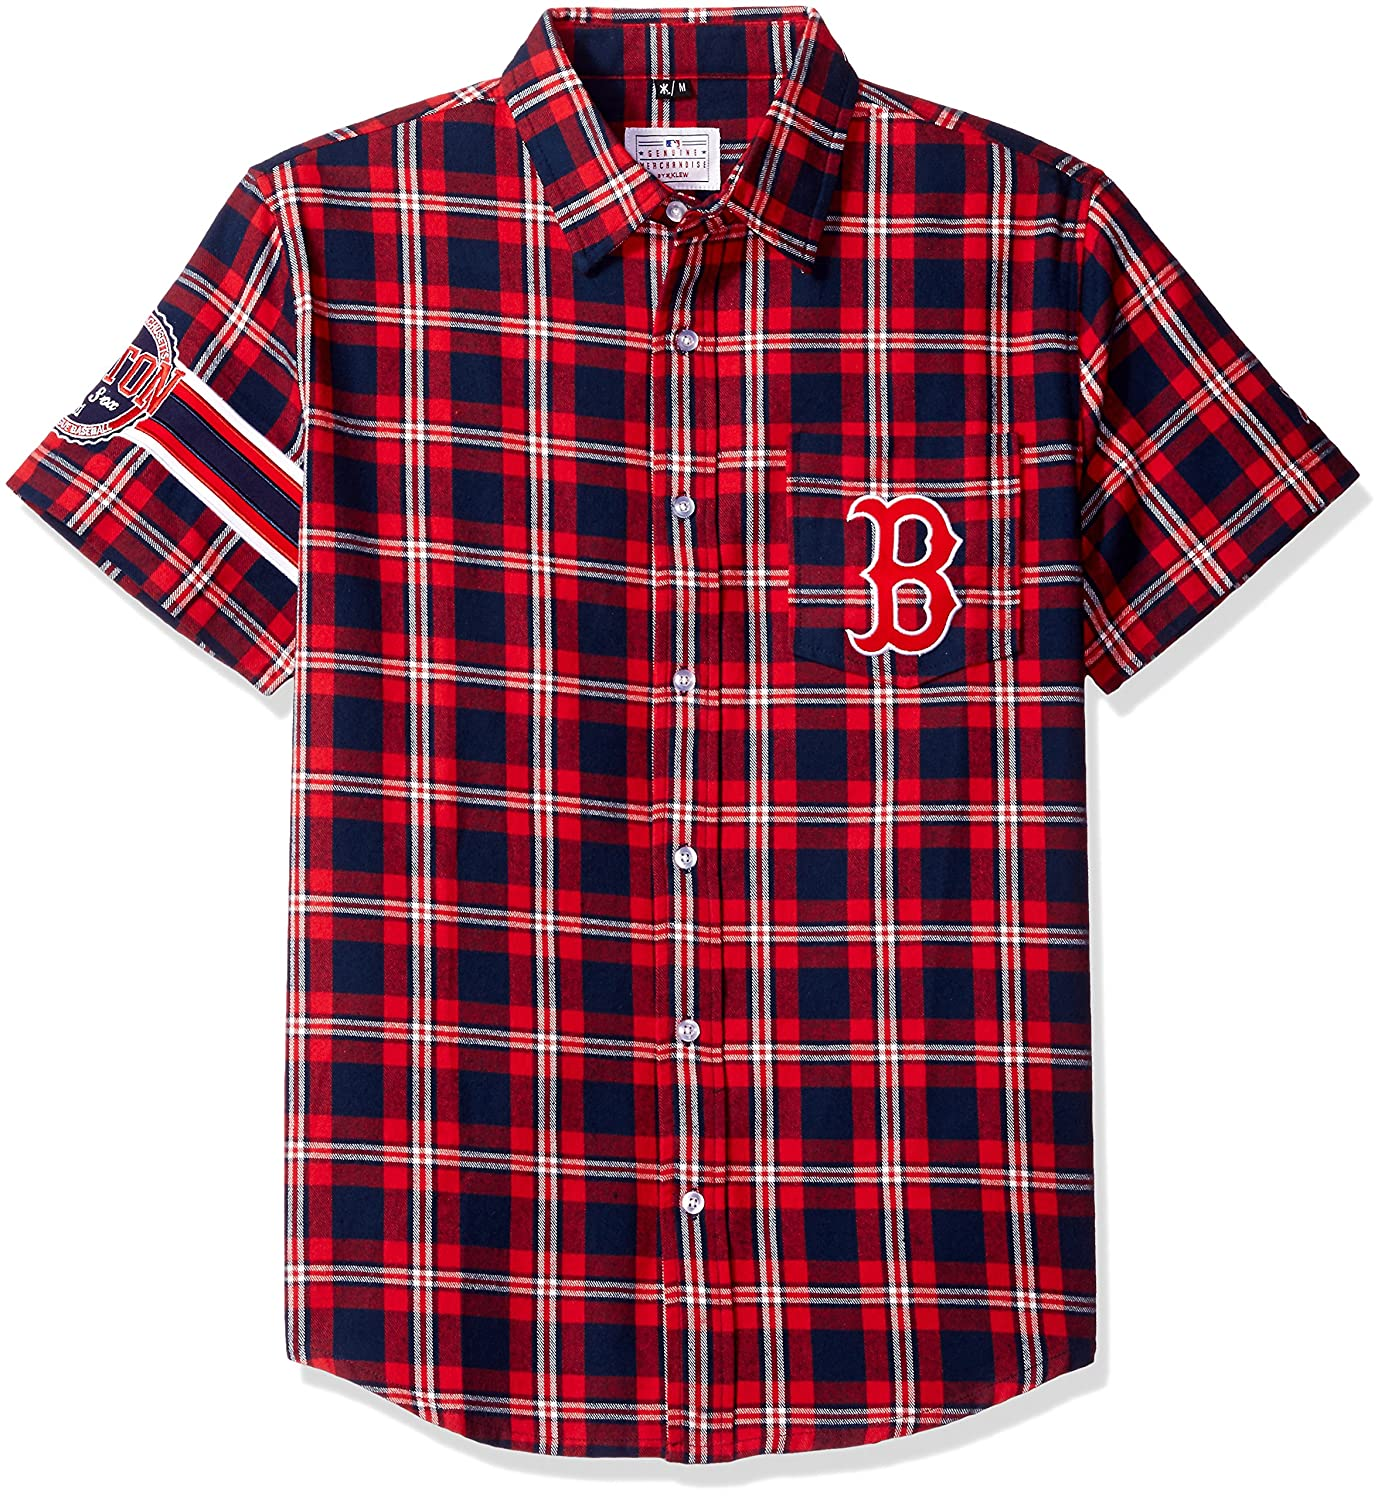 Klew MLB Boston ROT Sox Wordmark Flanell Short Sleeve knöpfbaren Shirt